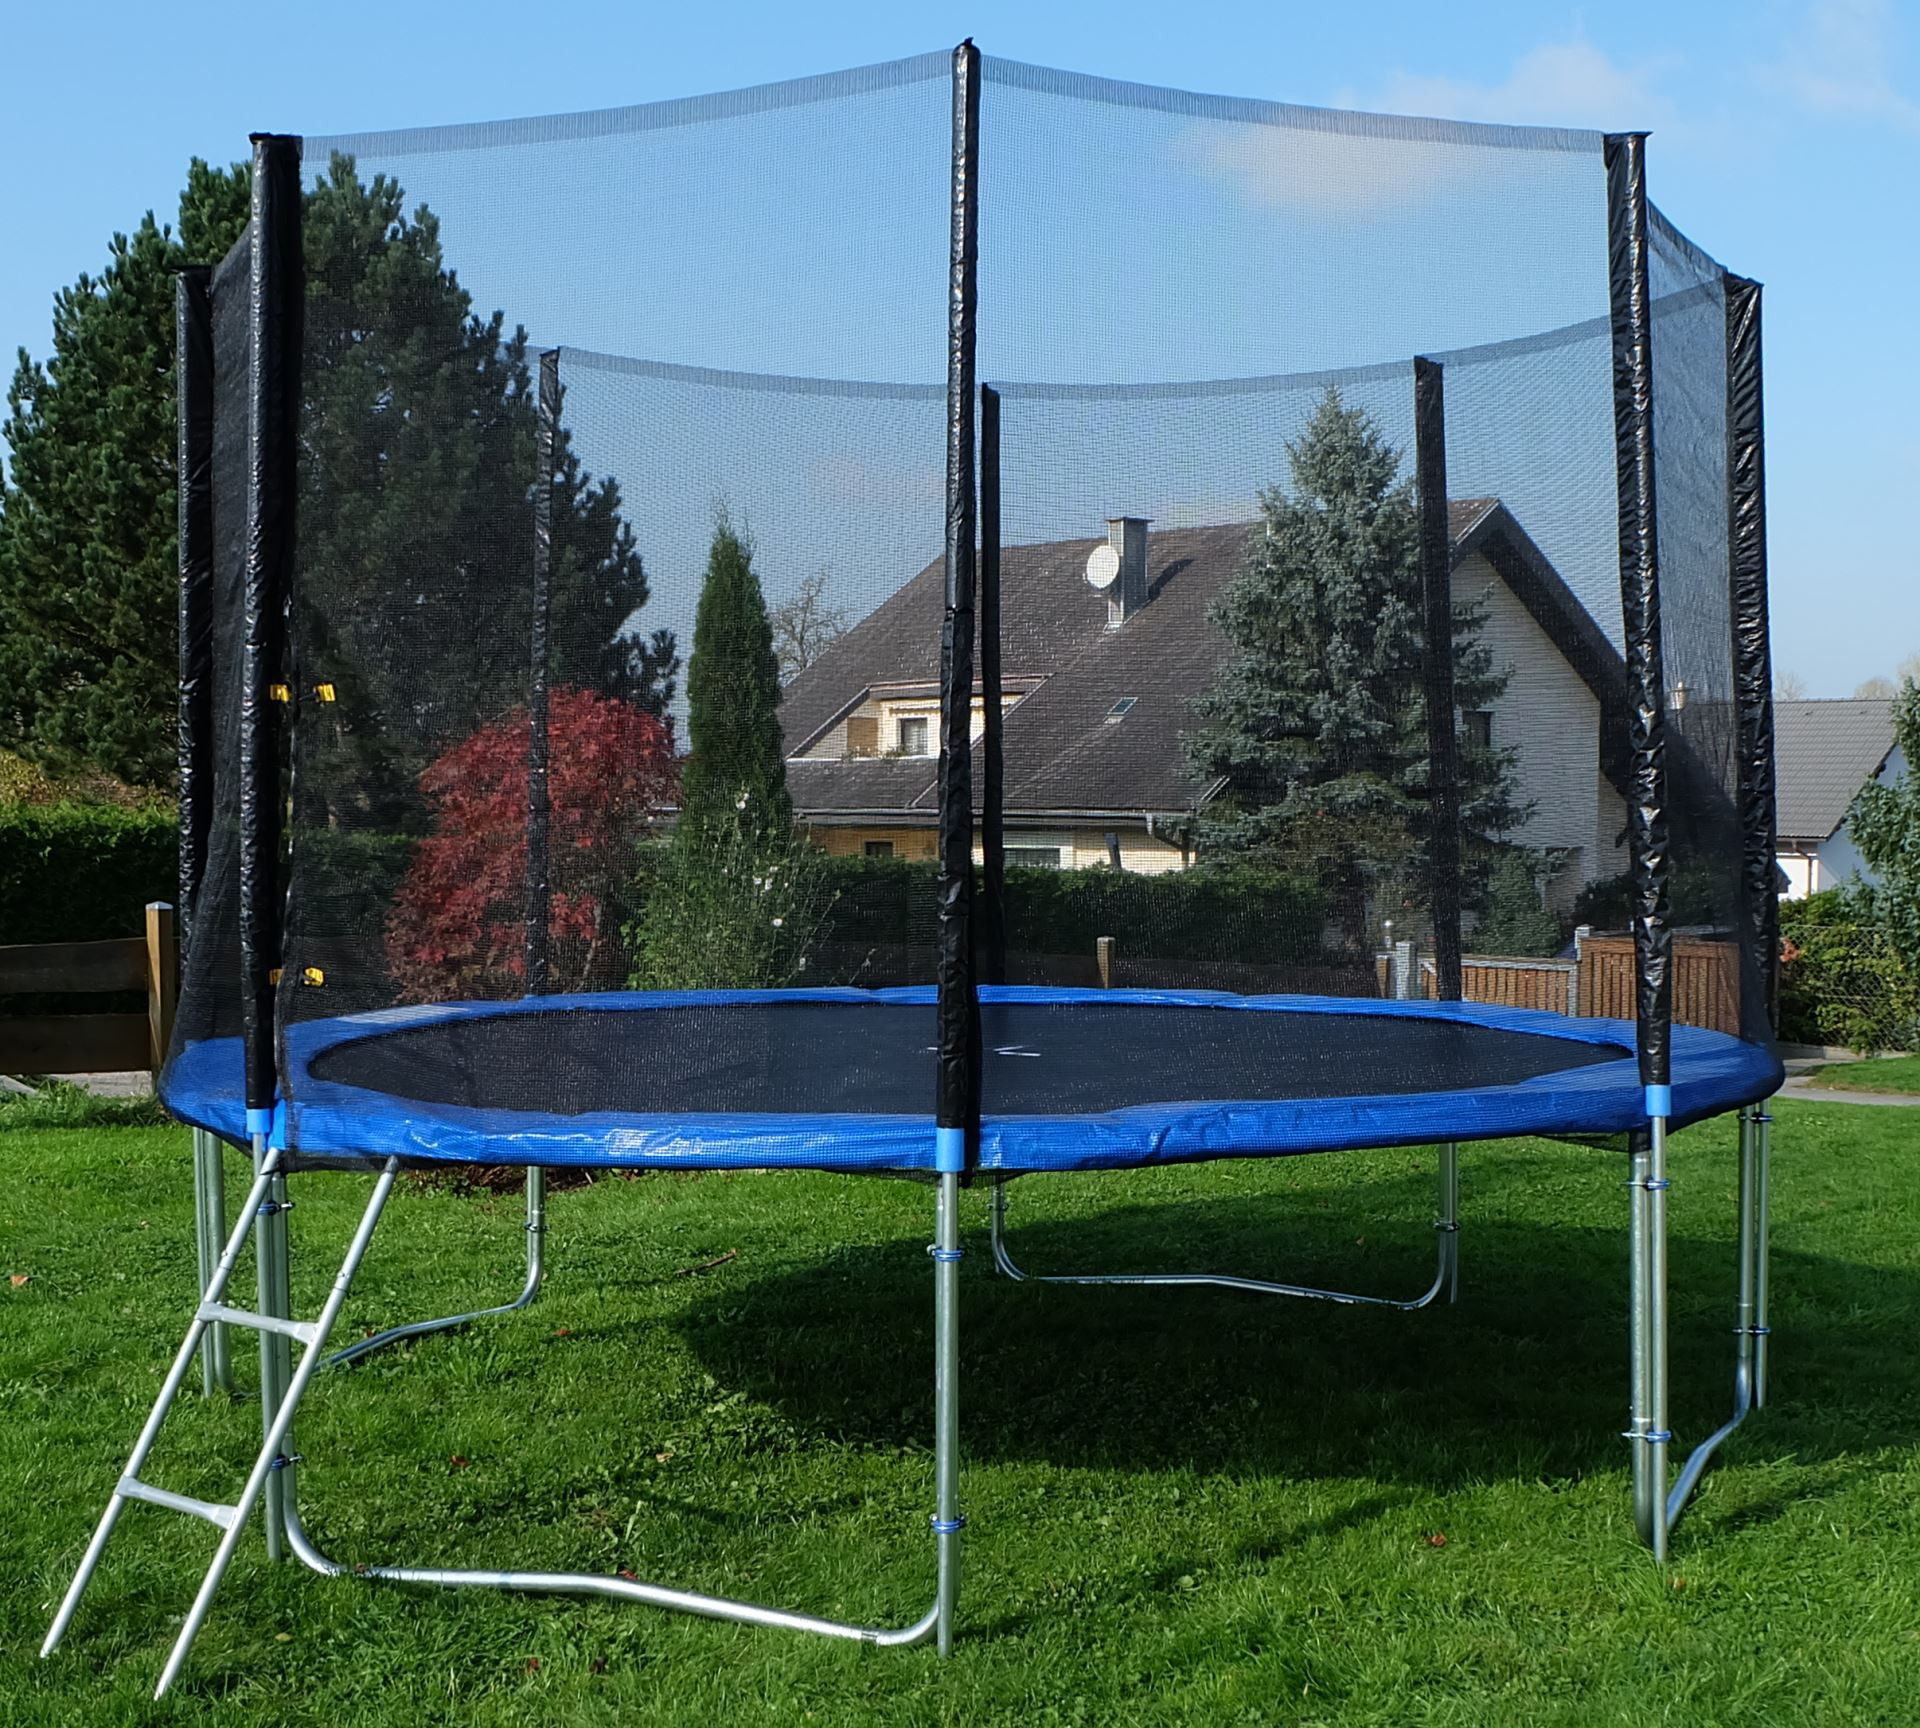 outdoor gartentrampolin trampolin 314cm m sicherheitsnetz leiter t v gepr ft ebay. Black Bedroom Furniture Sets. Home Design Ideas